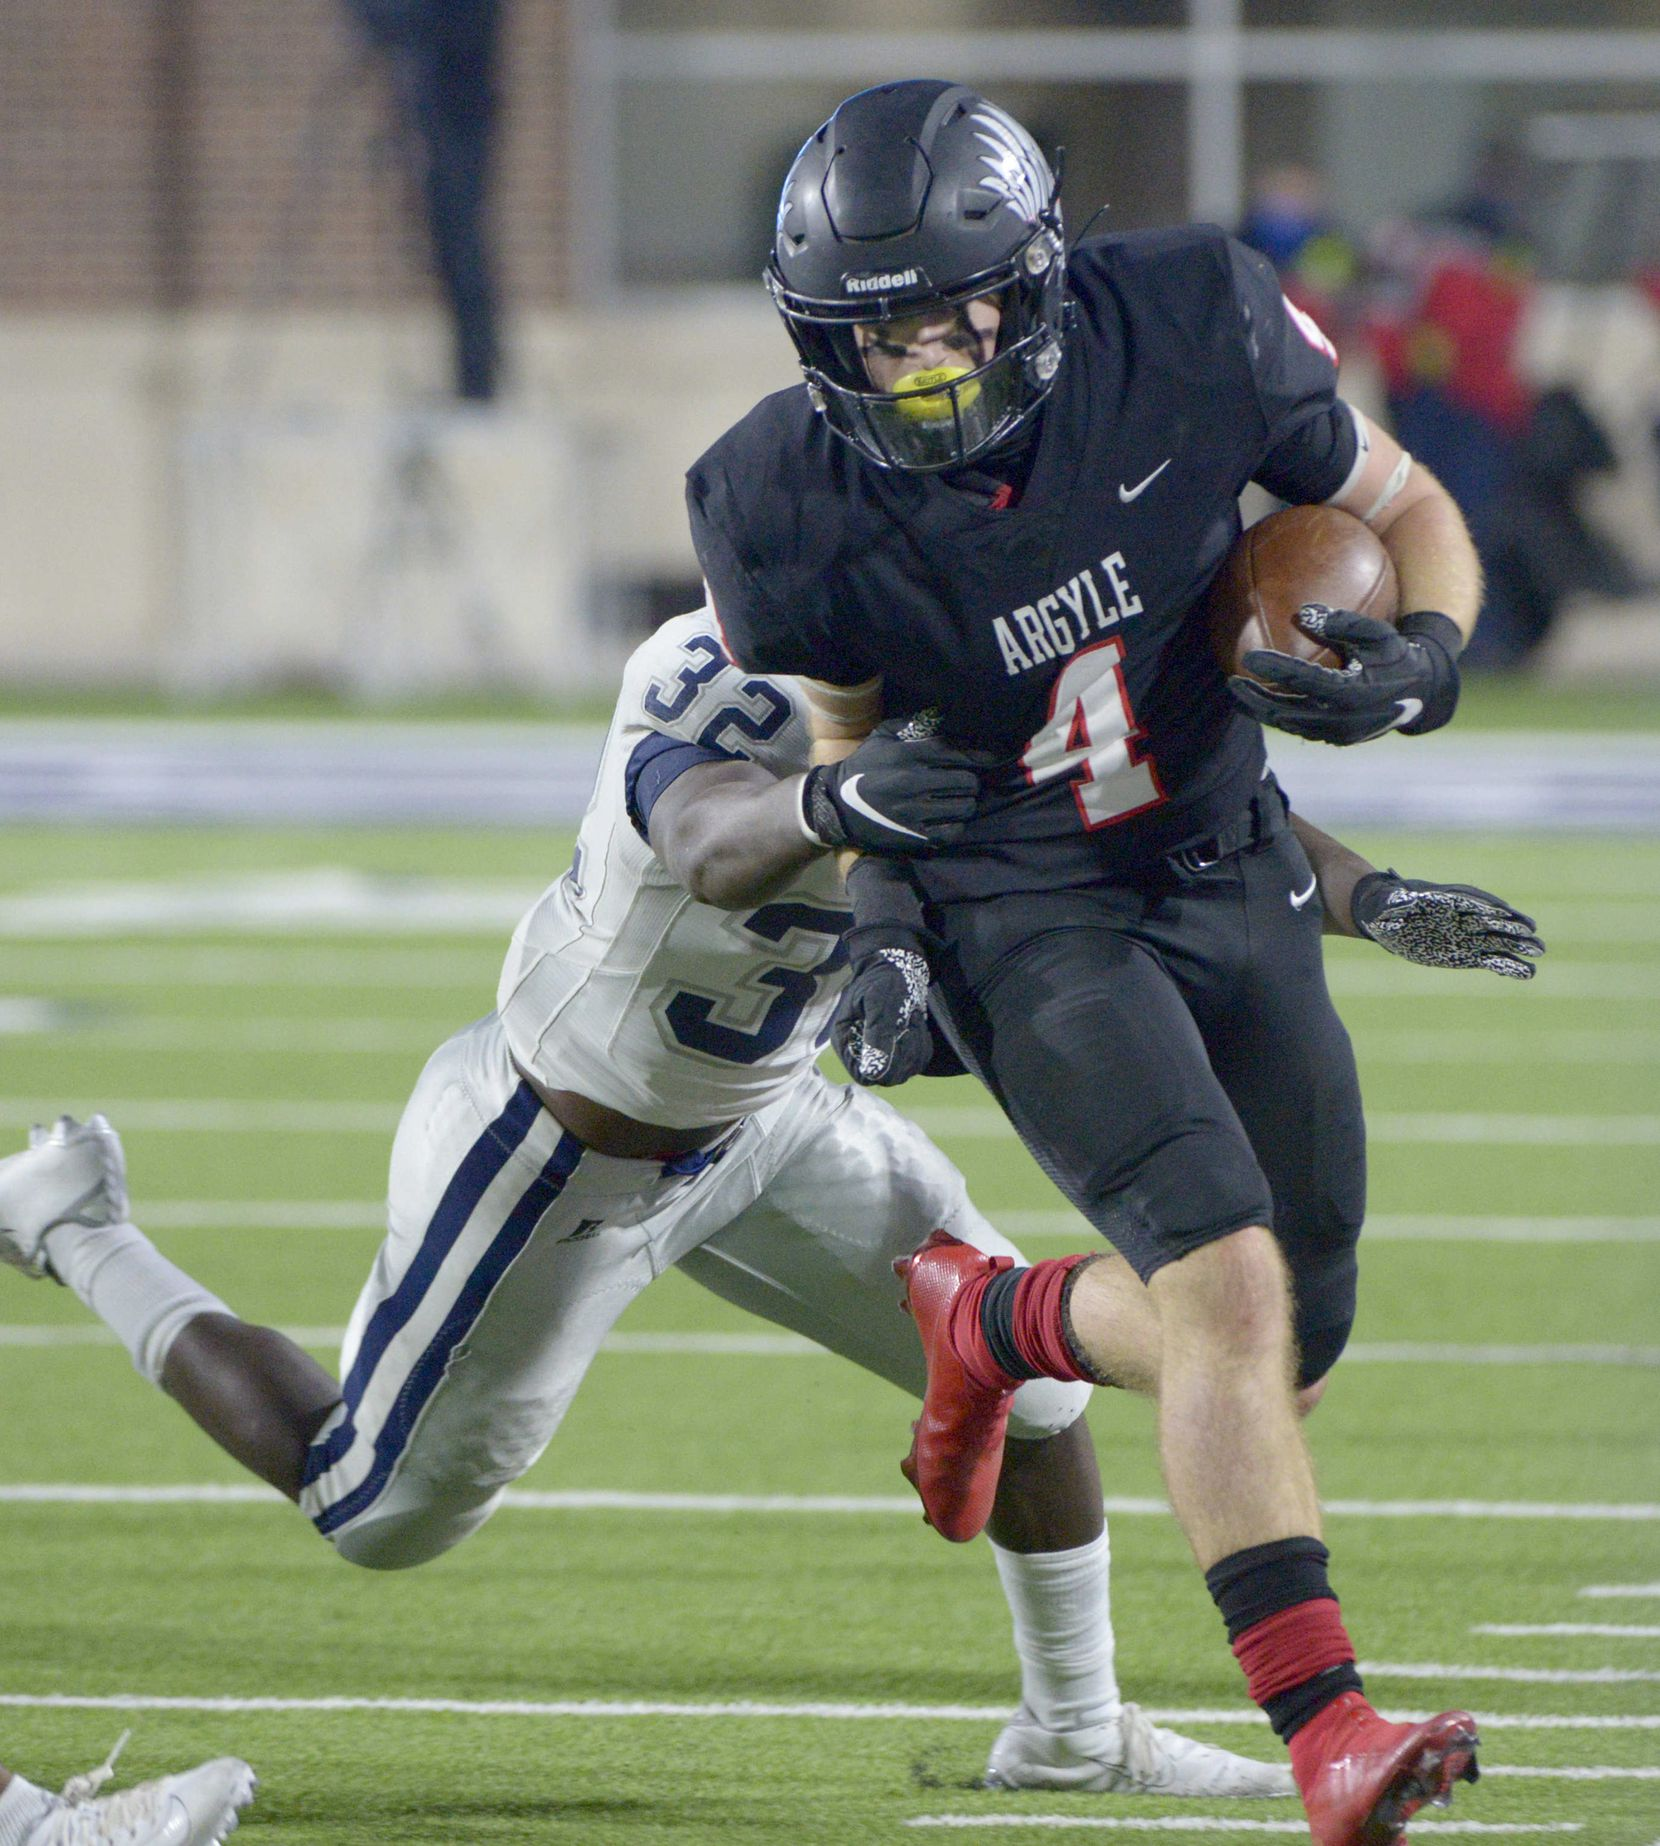 Argyle's Knox Scoggins (4) runs through a tackle attempt by Paris' Keshawn Wallace (32) in the second half during a Class 4A Division I Region II final playoff football game between Paris and Argyle, Saturday, Dec. 5, 2020, in McKinney,  Texas. (Matt Strasen/Special Contributor)